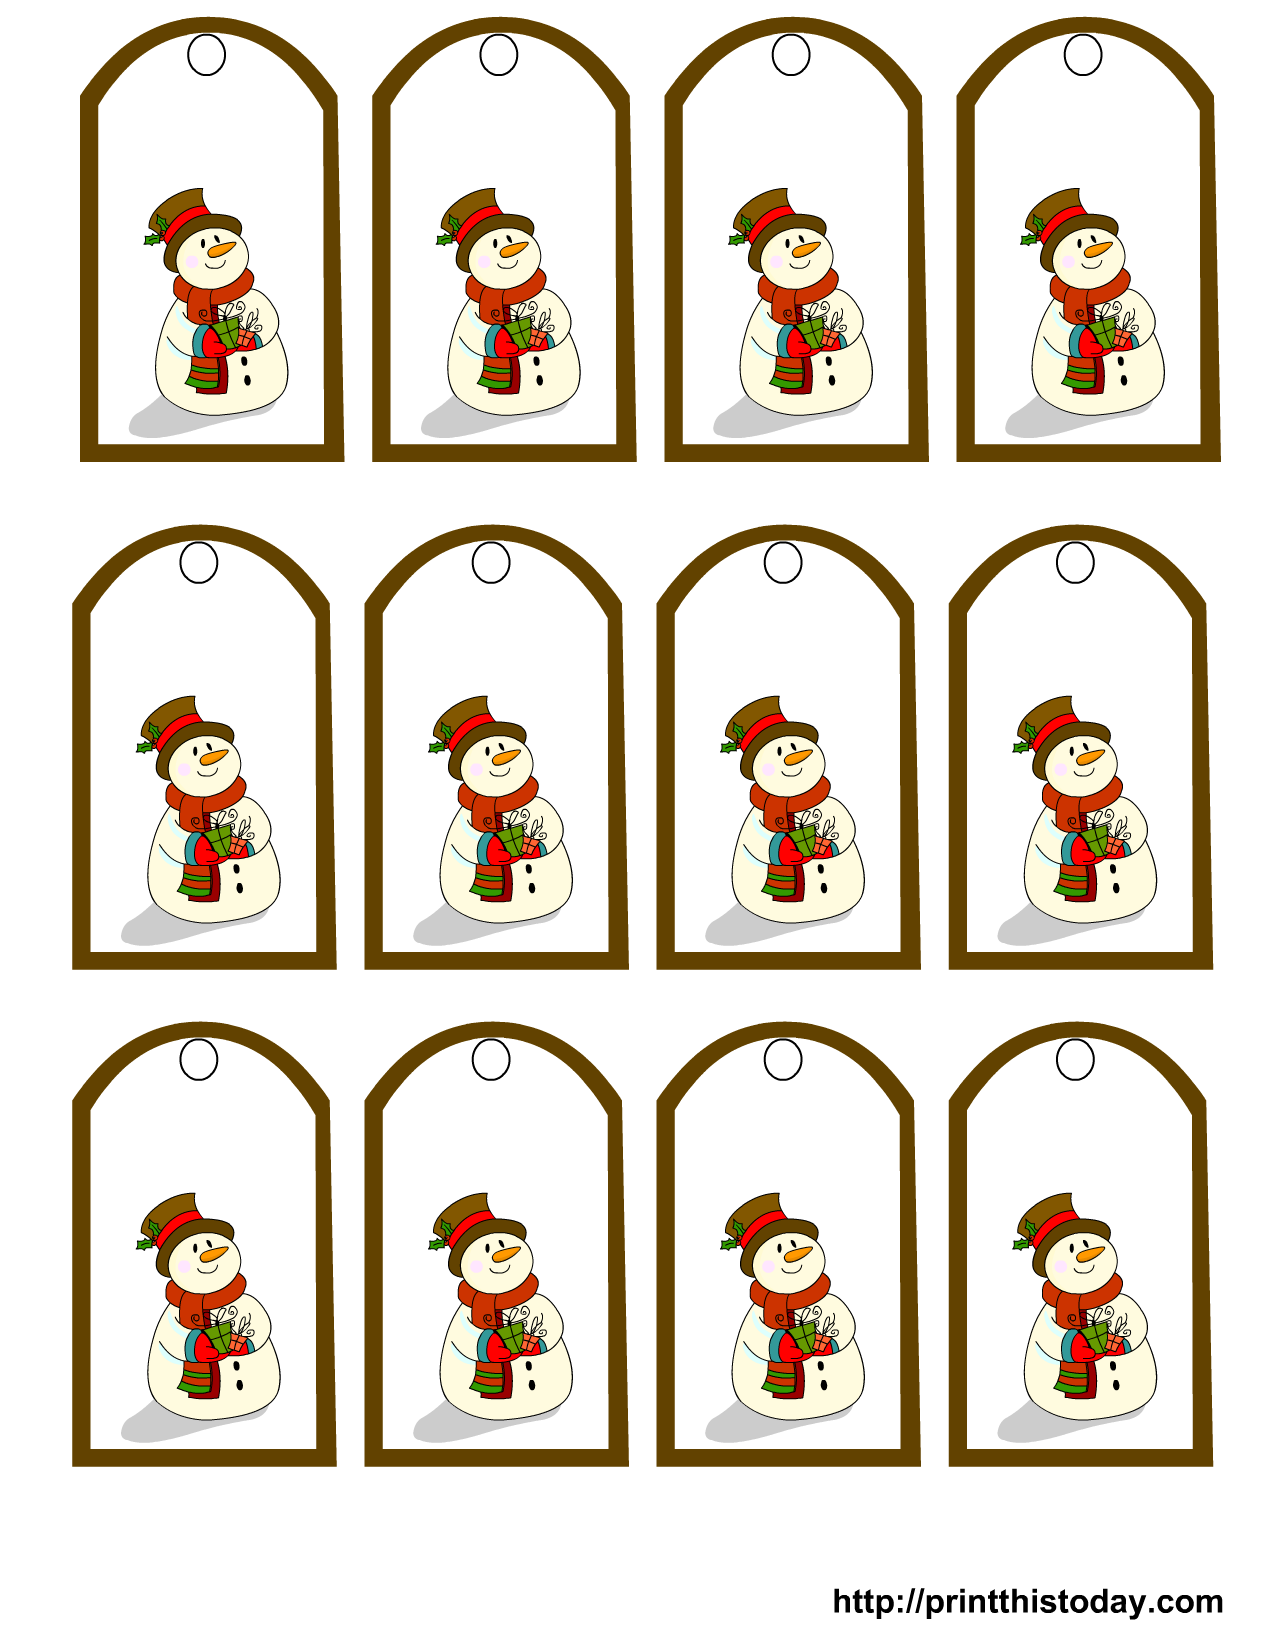 4 Images of Snowman Printable Labels